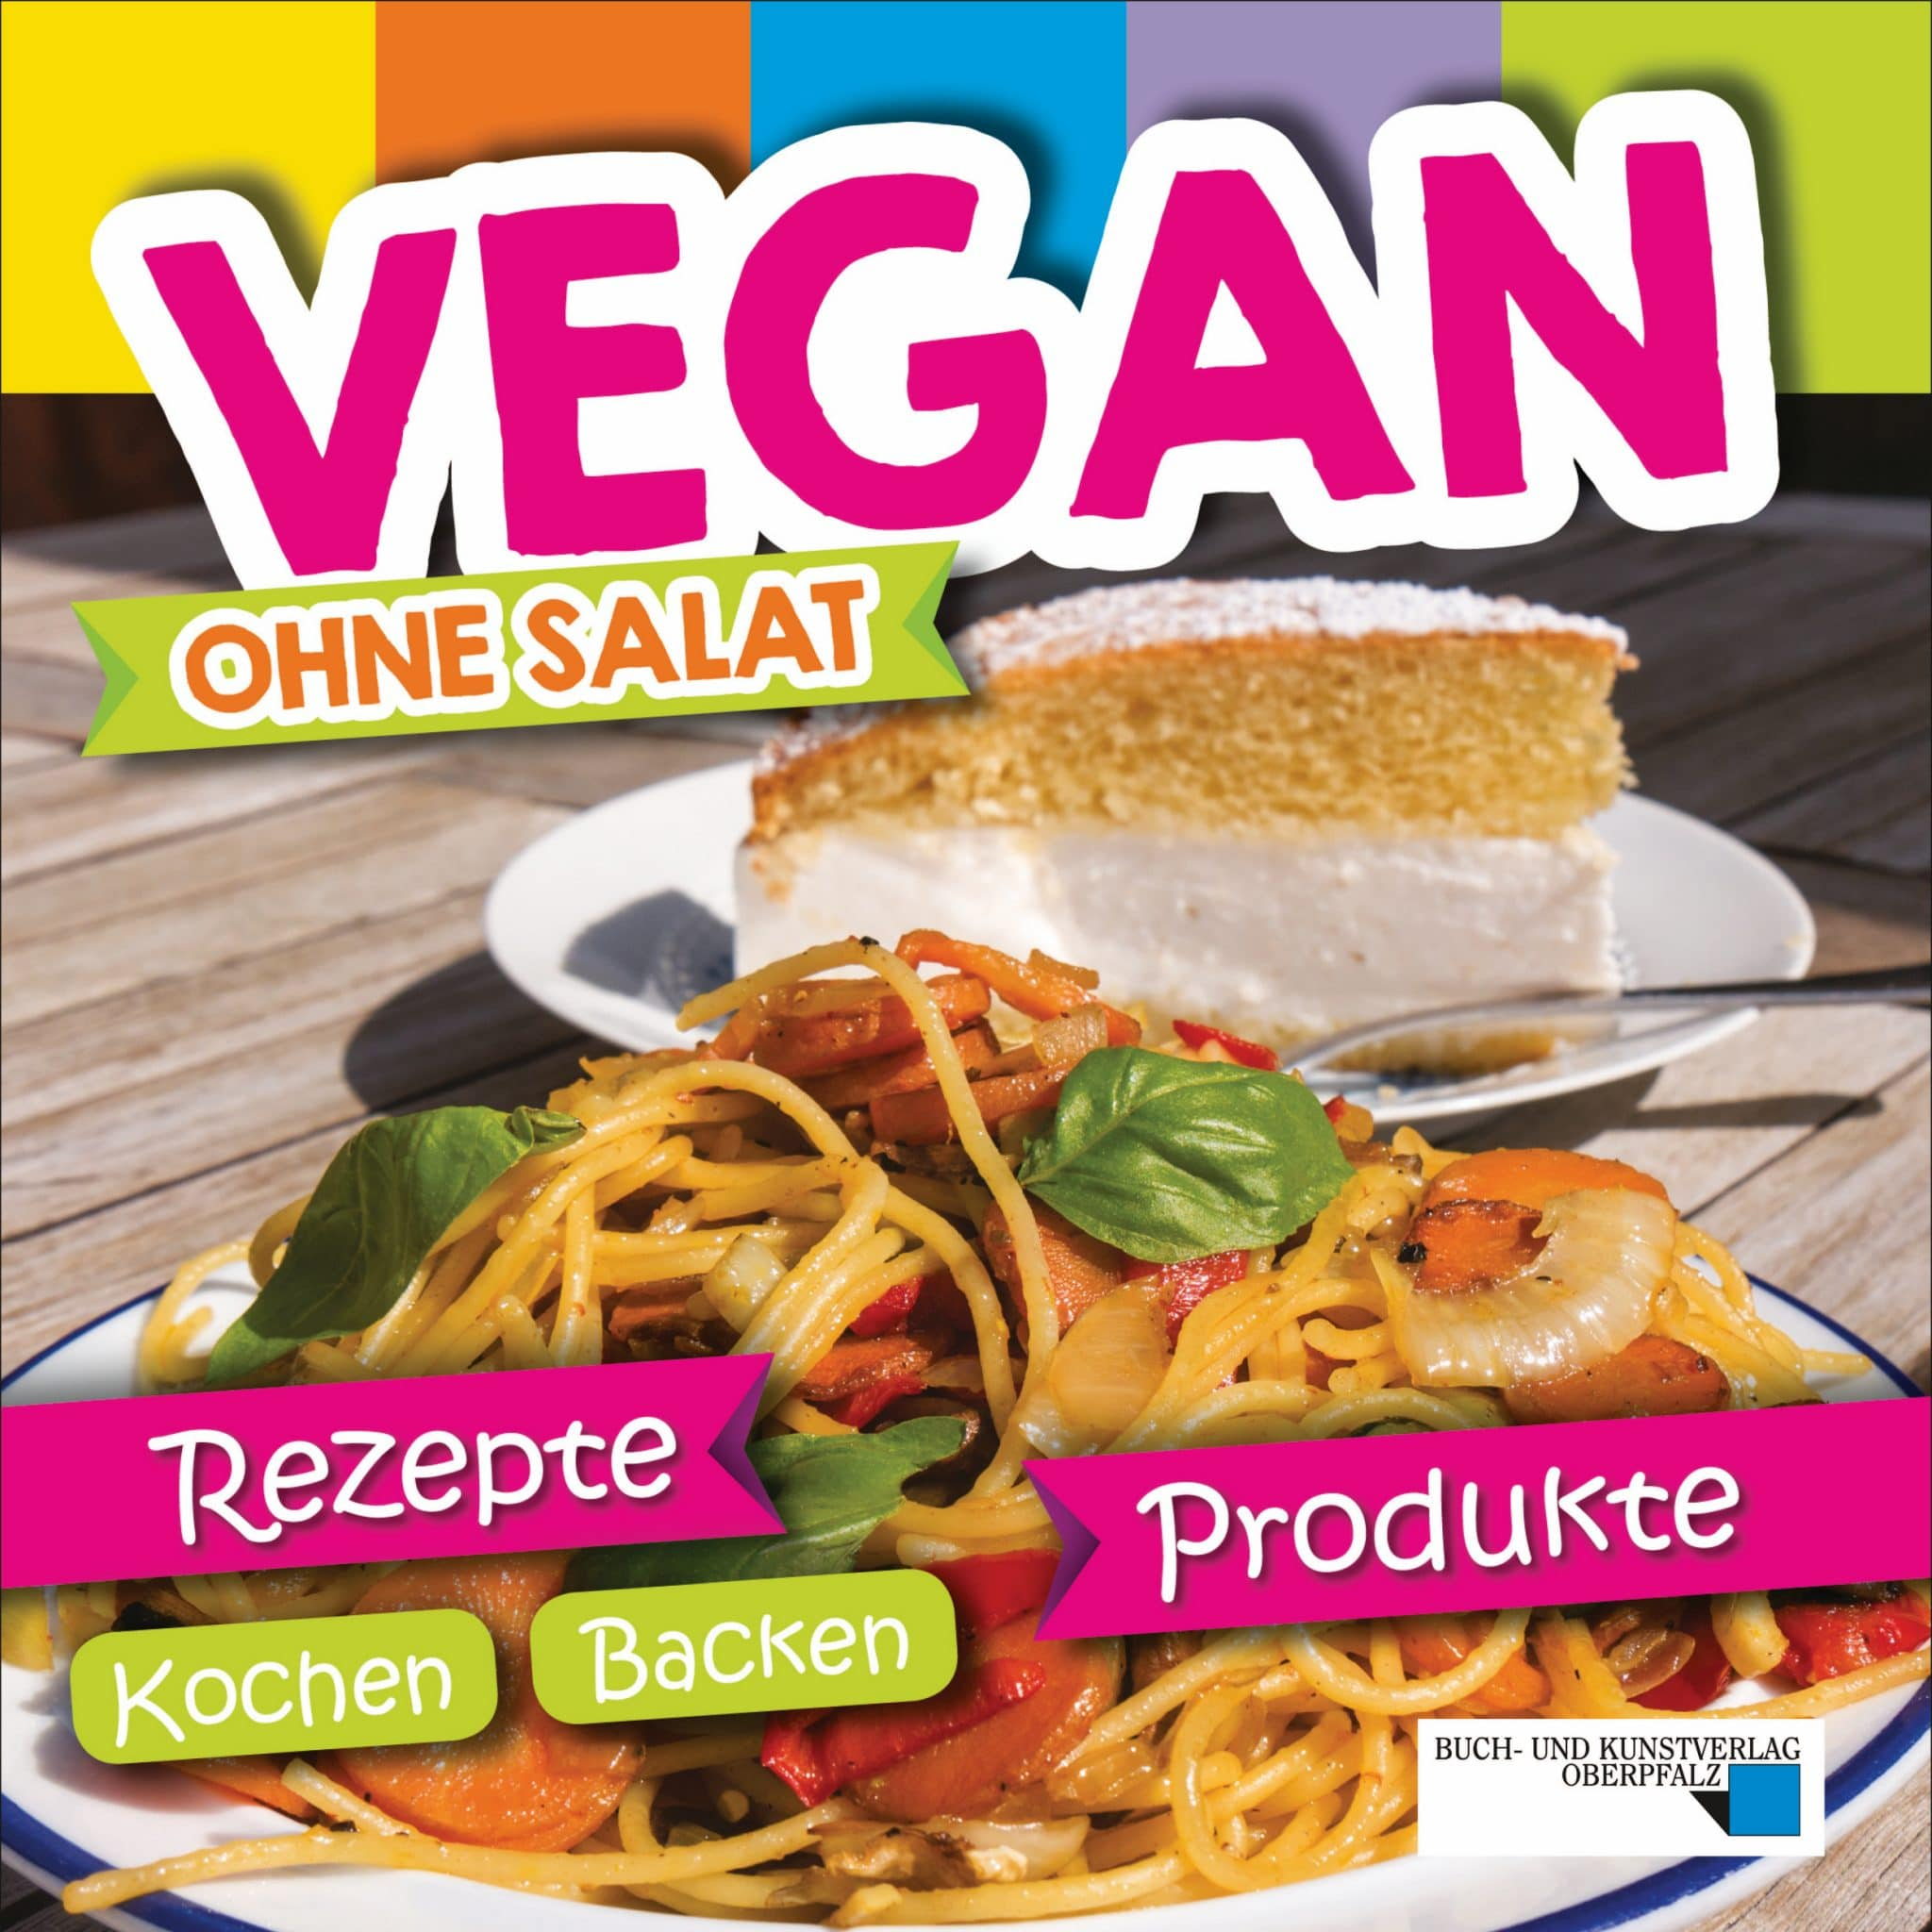 https://proveg.com/de/wp-content/uploads/sites/5/2018/10/Vegan-ohne-Salat.jpg